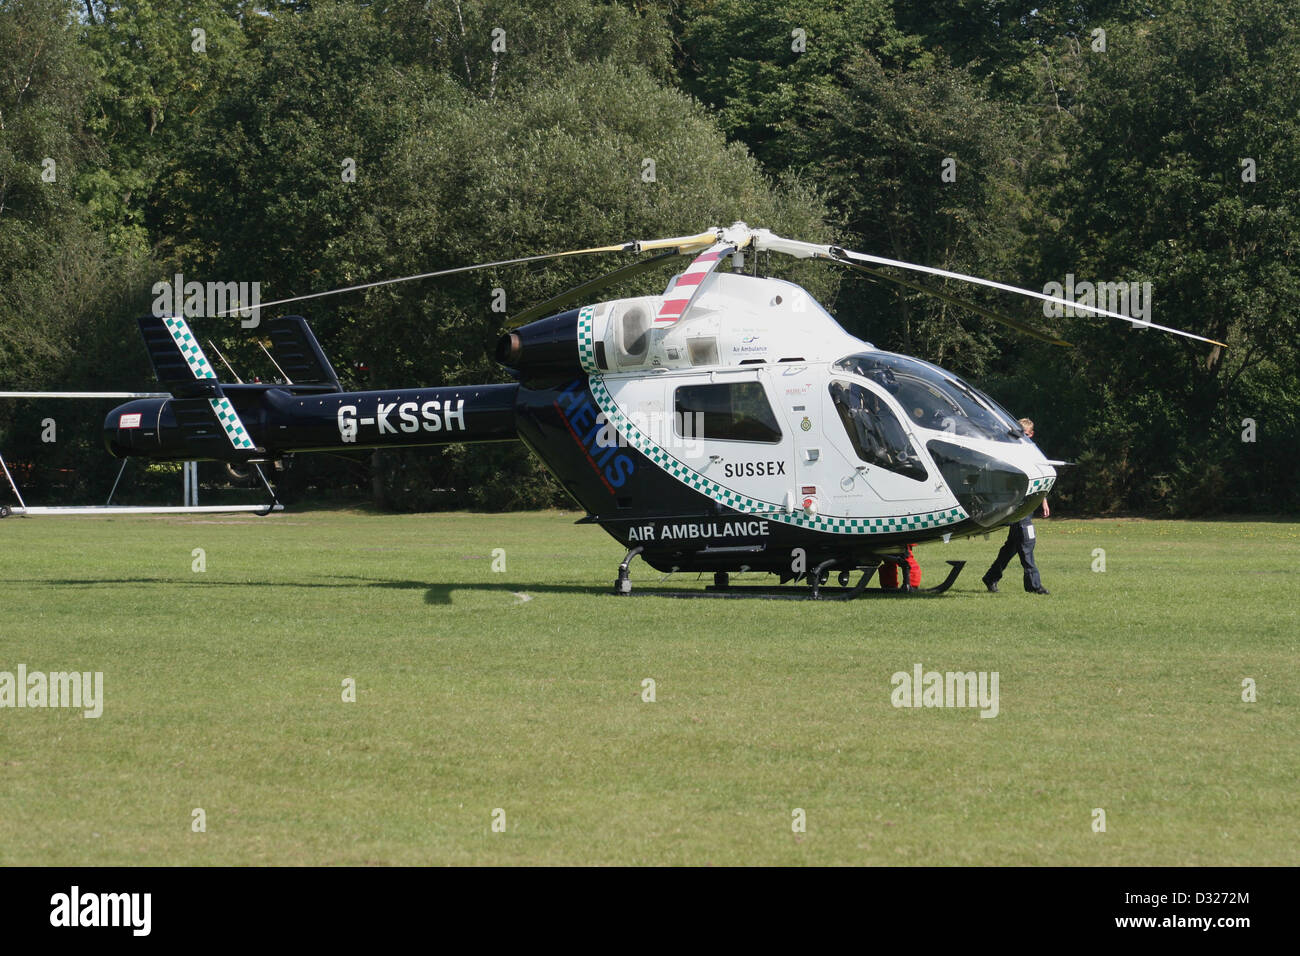 SUSSEX SURREY AIR AMBULANCE - Stock Image